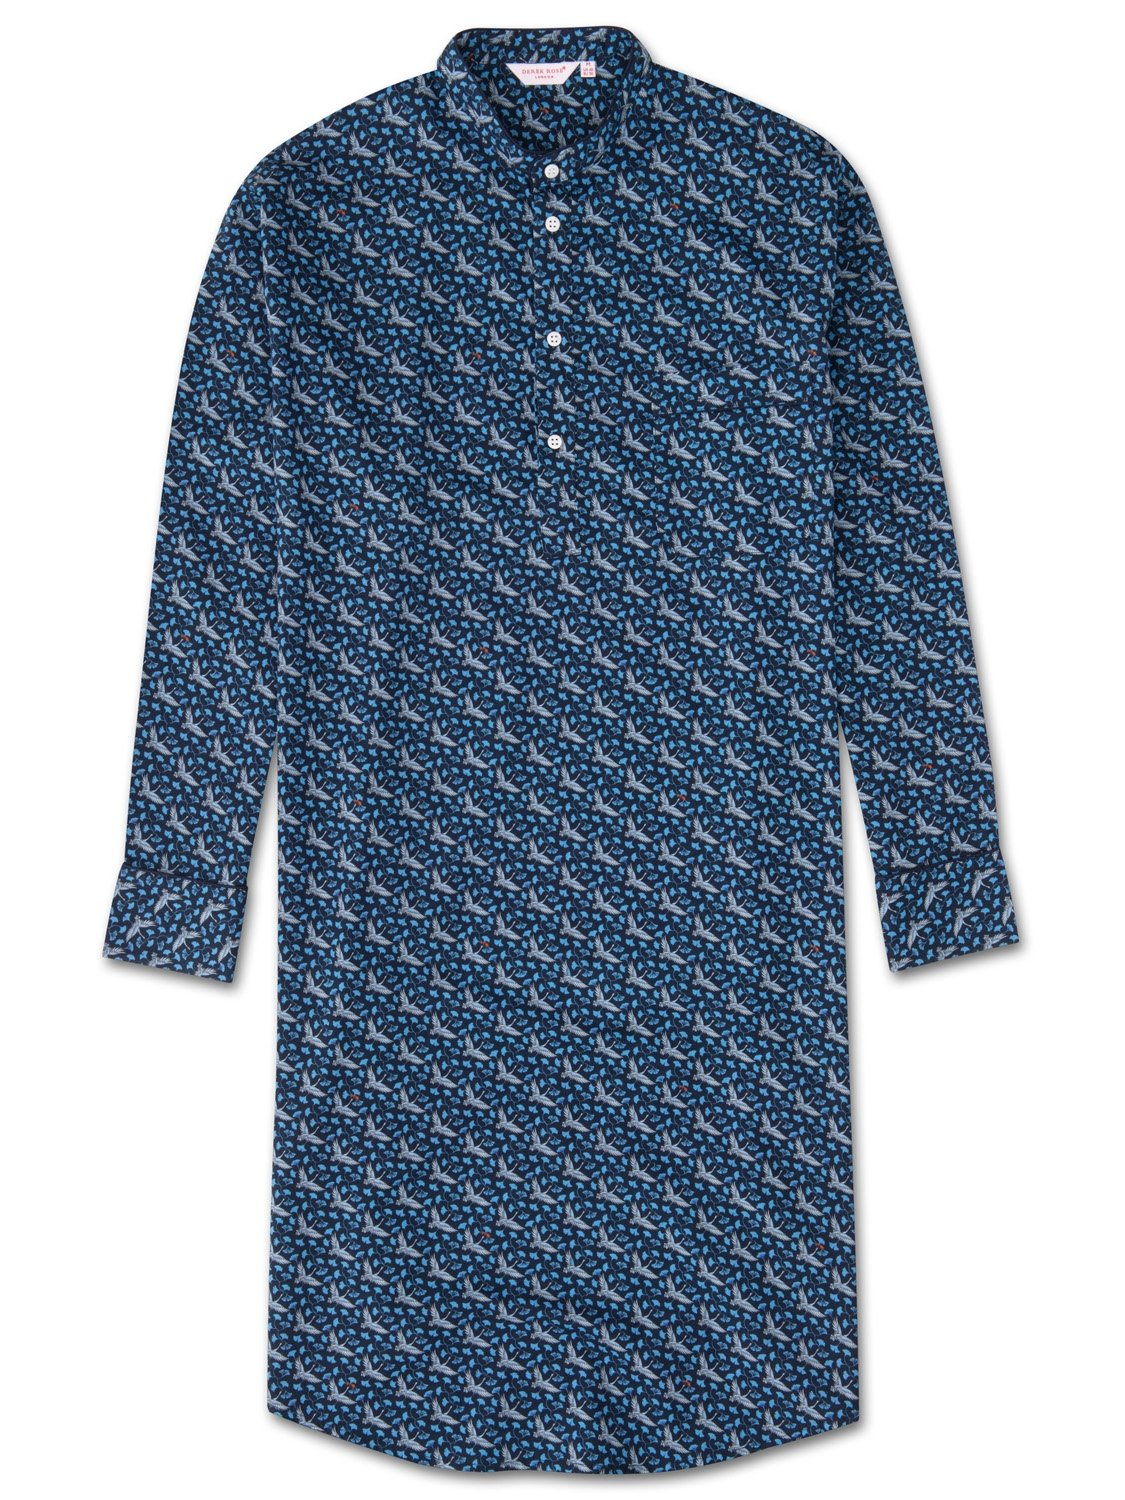 Men's Pullover Nightshirt Ledbury 15 Cotton Batiste Navy